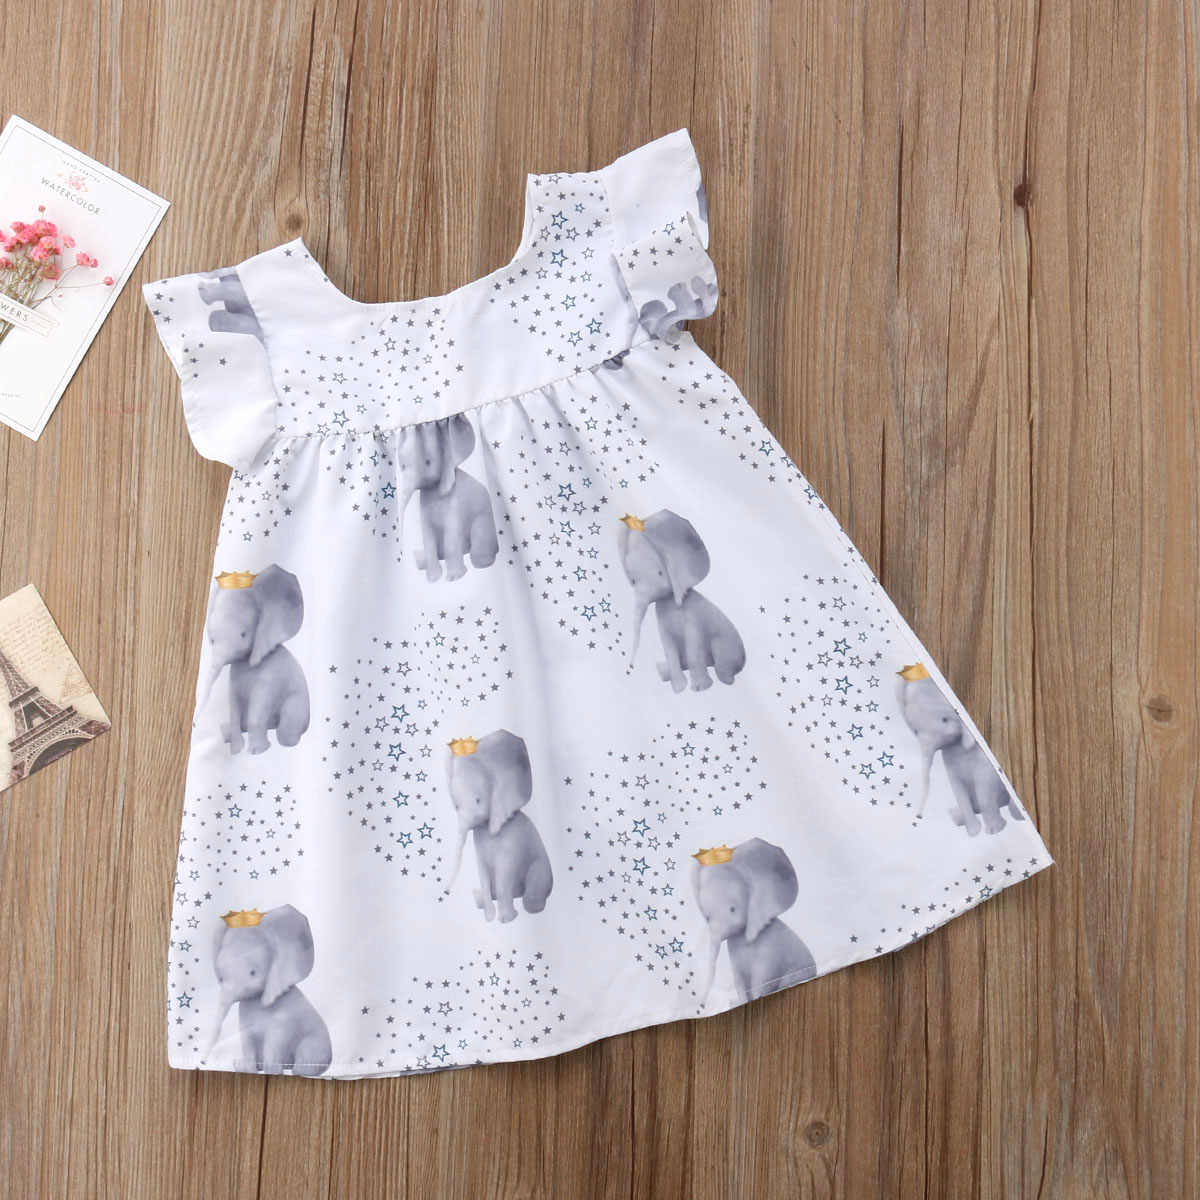 4db232611c433 ... Toddler kid Baby Girls Summer Dress Star Elephant Print Princess Party Dress  Clothes Sundress Children Clothing ...